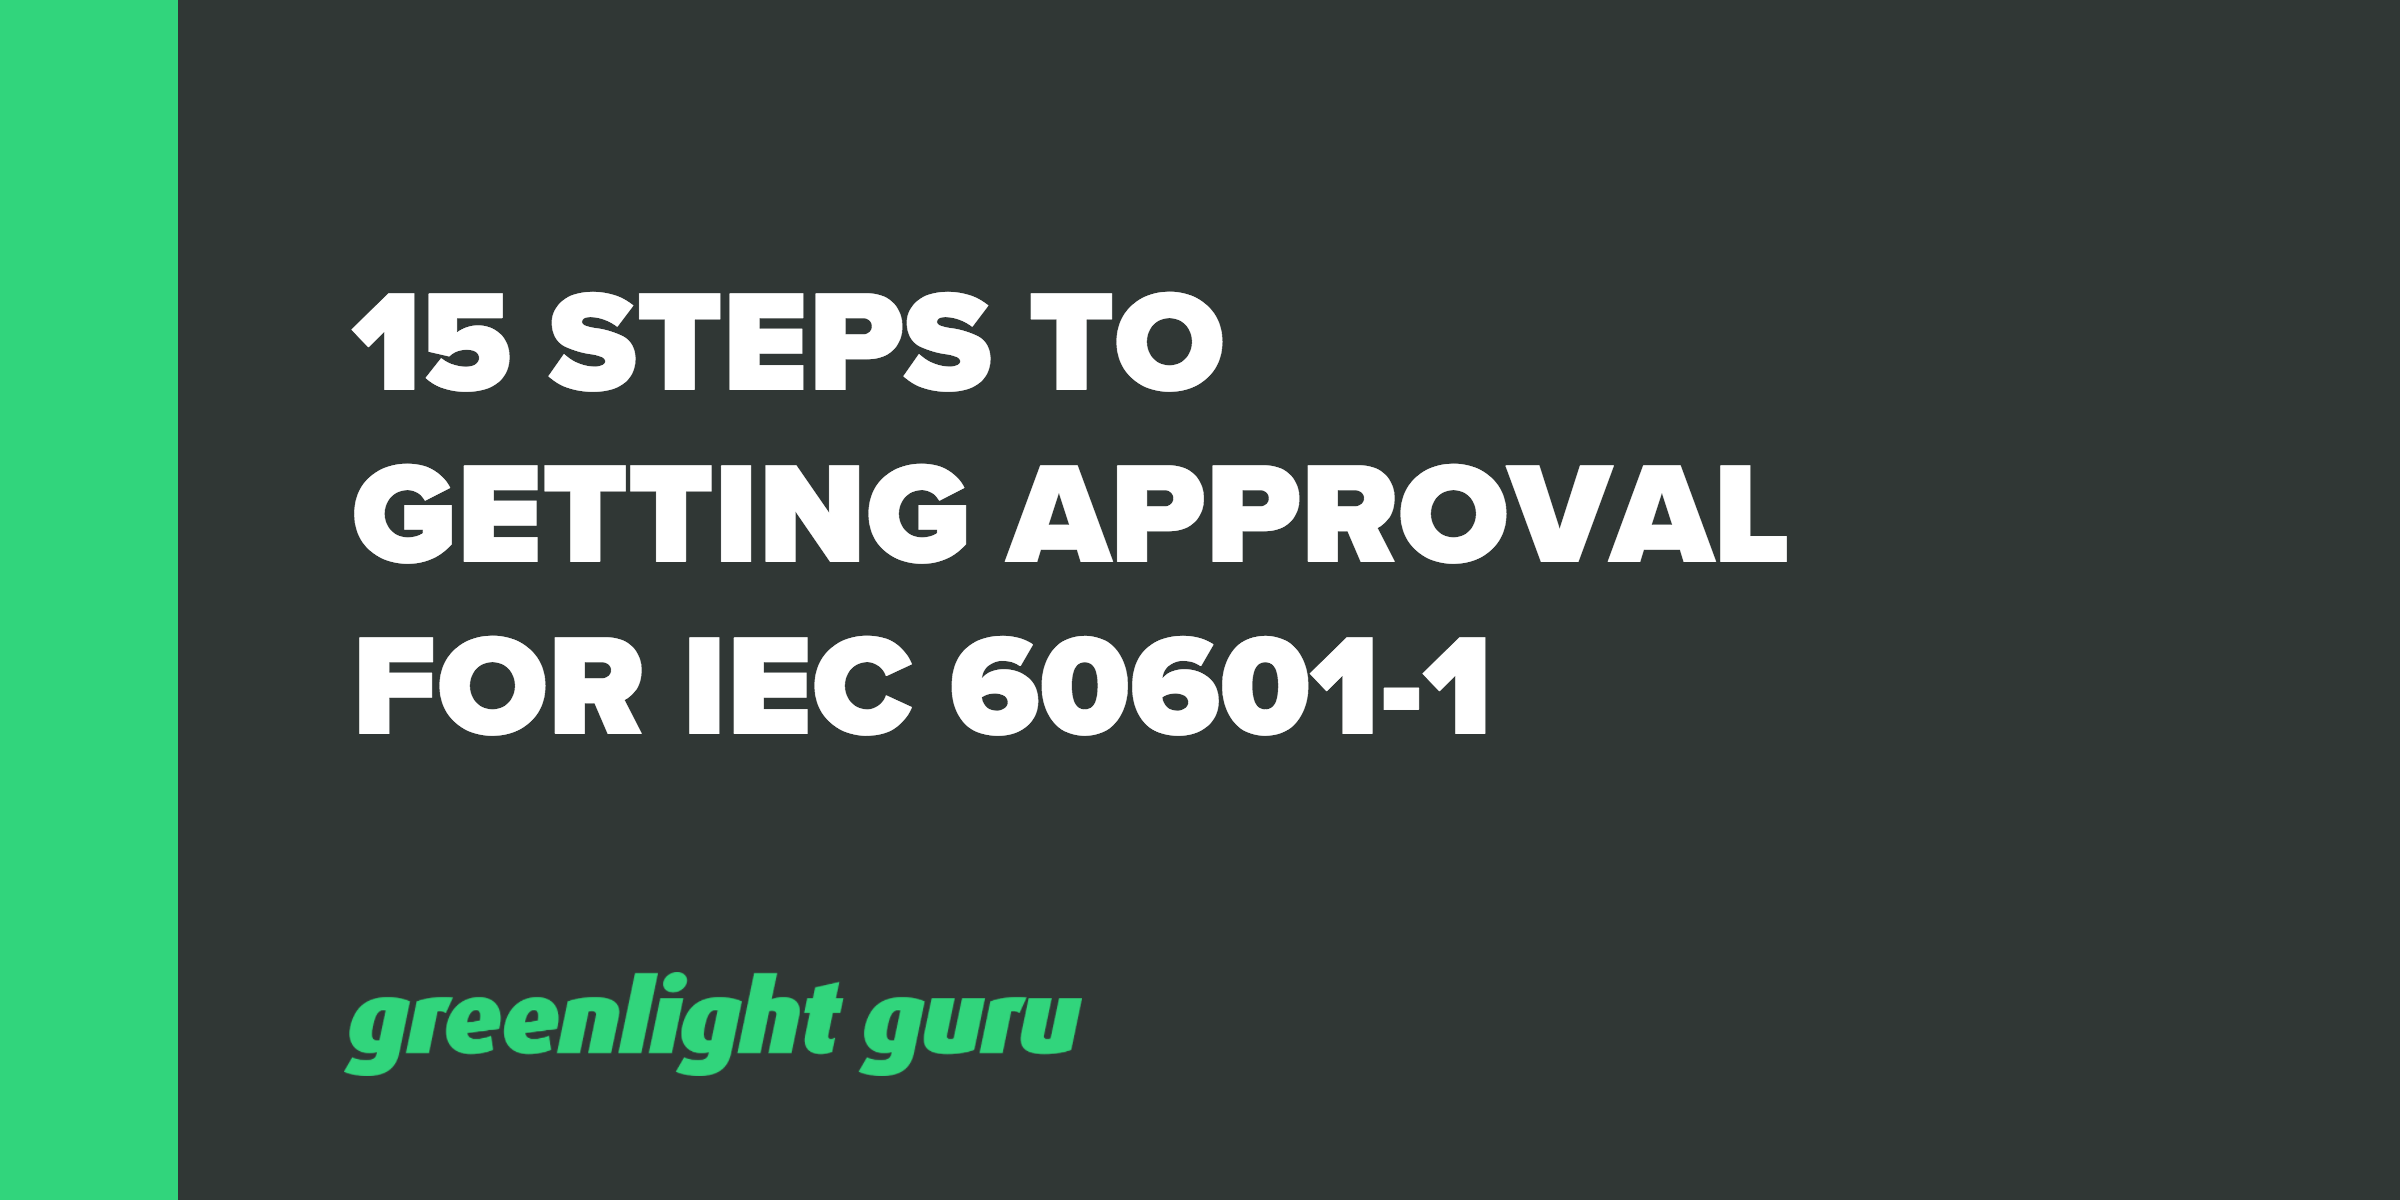 15 Steps to Getting Approval for IEC 60601-1 - Featured Image